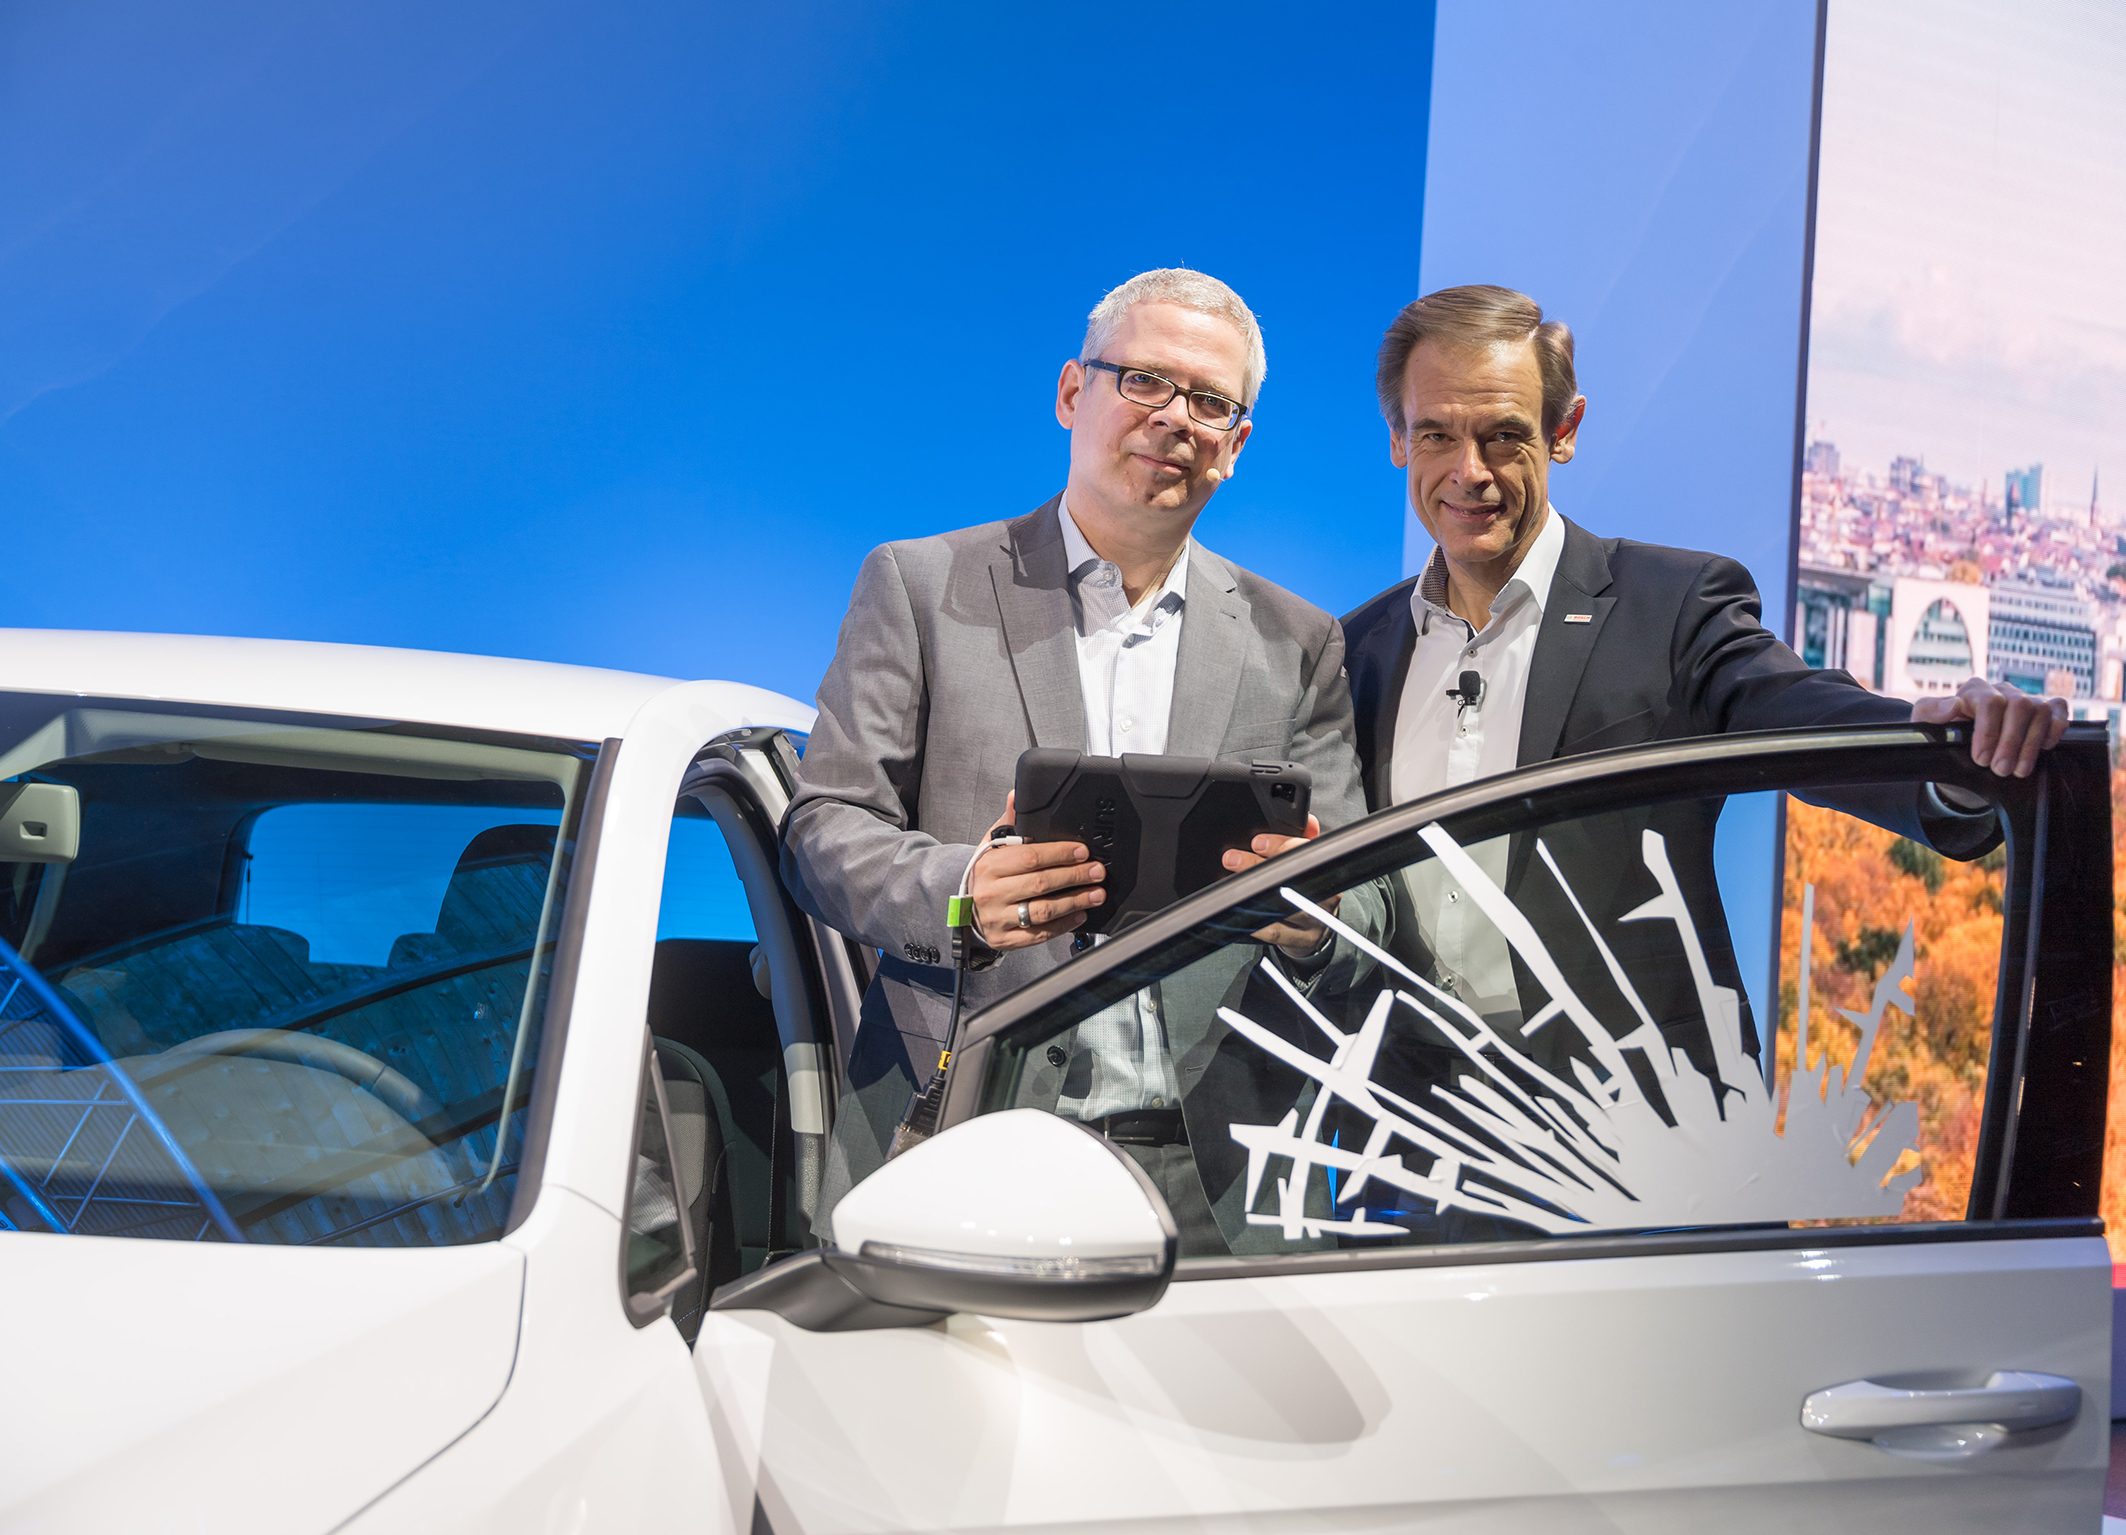 Bosch CEO Dr. Volkmar Denner and MC Dirk Slama demonstrate the connected repair shop as part of the opening address at Bosch Connected World 2017